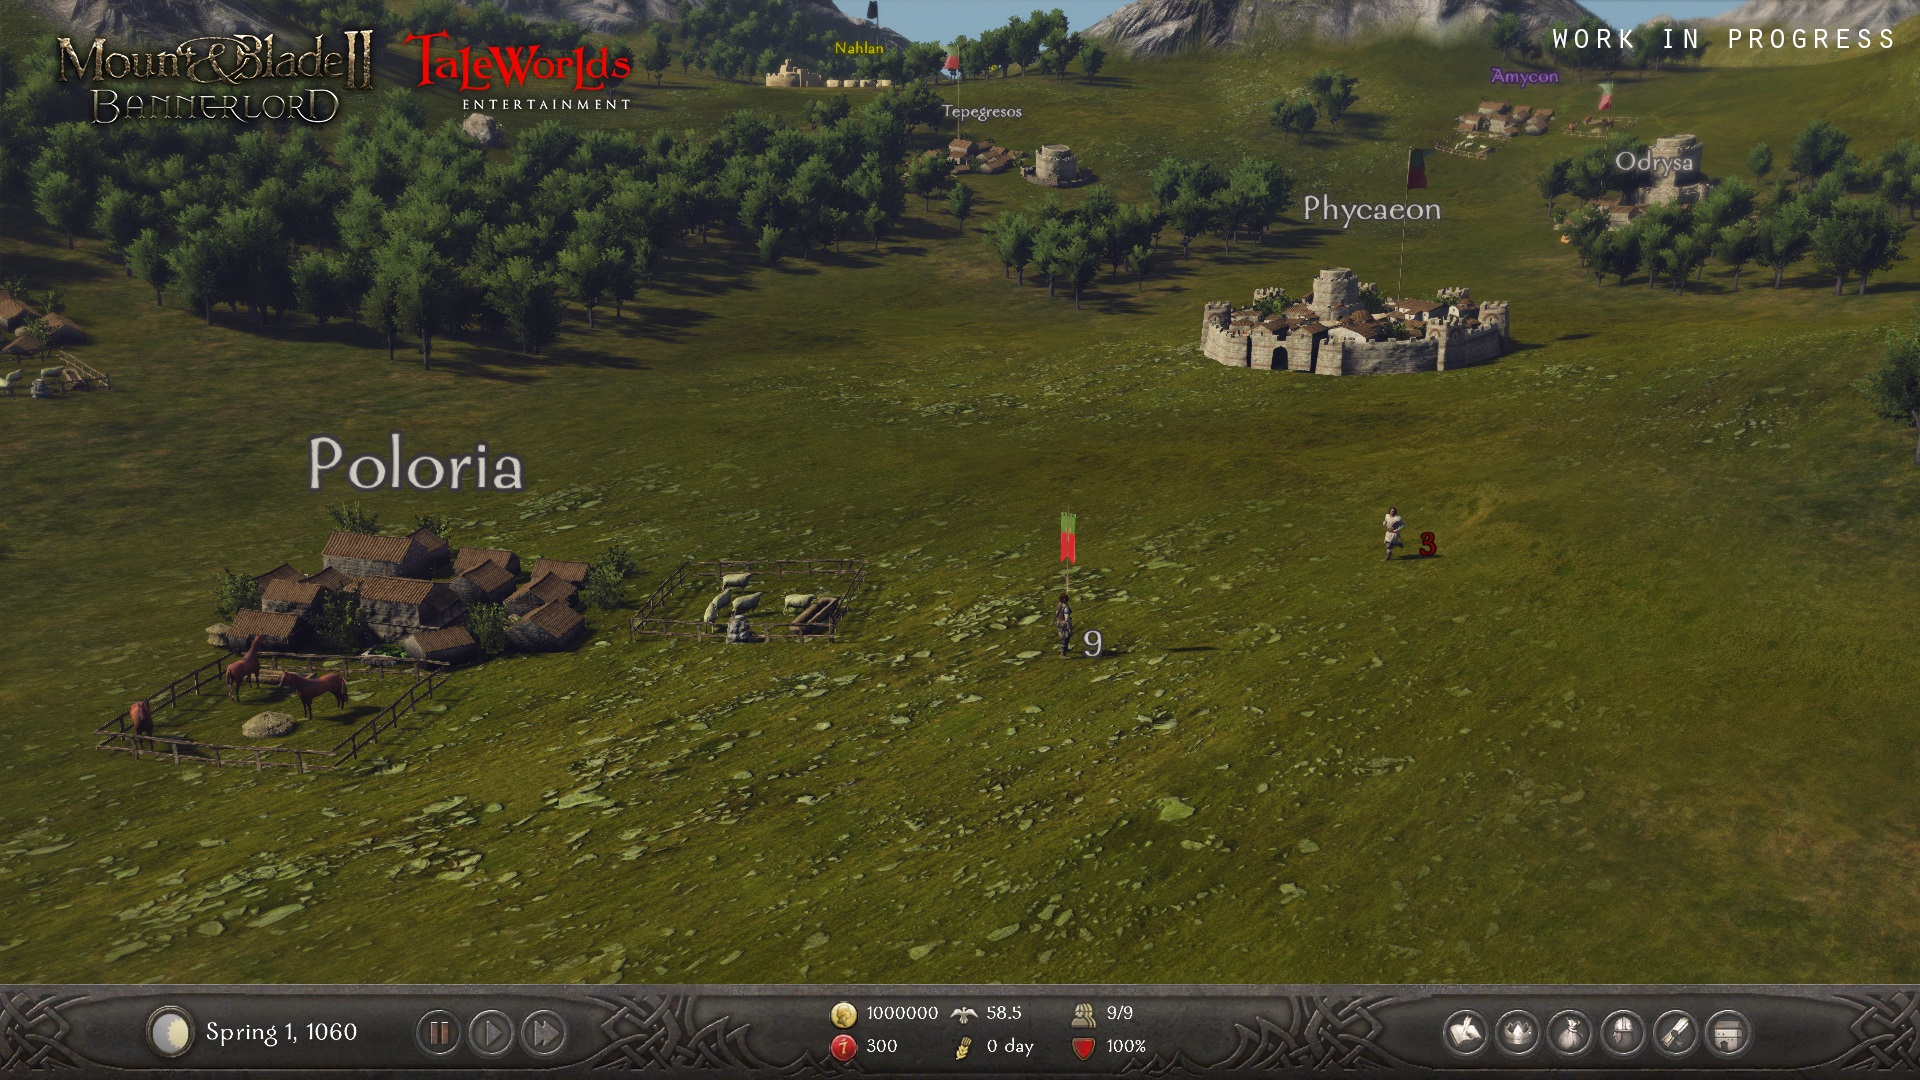 Steam community guide mountblade ii bannerlord all steam community guide mountblade ii bannerlord all information blogs videos screenshotsoutdated gumiabroncs Choice Image